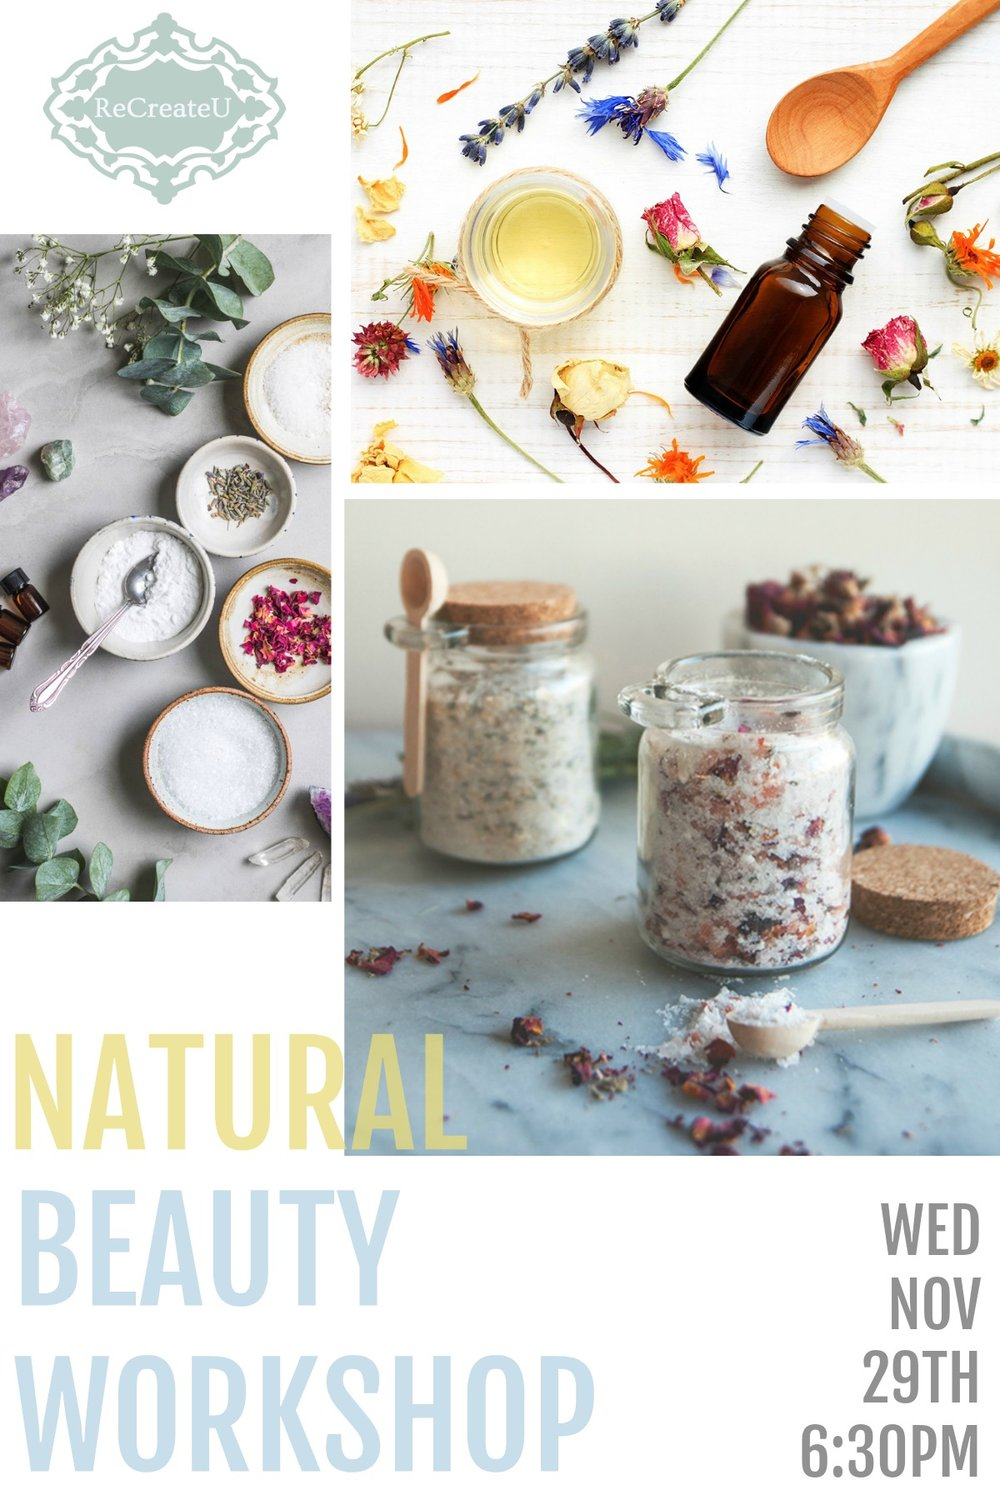 NATURAL BEAUTY WORKSHOP 2.jpg